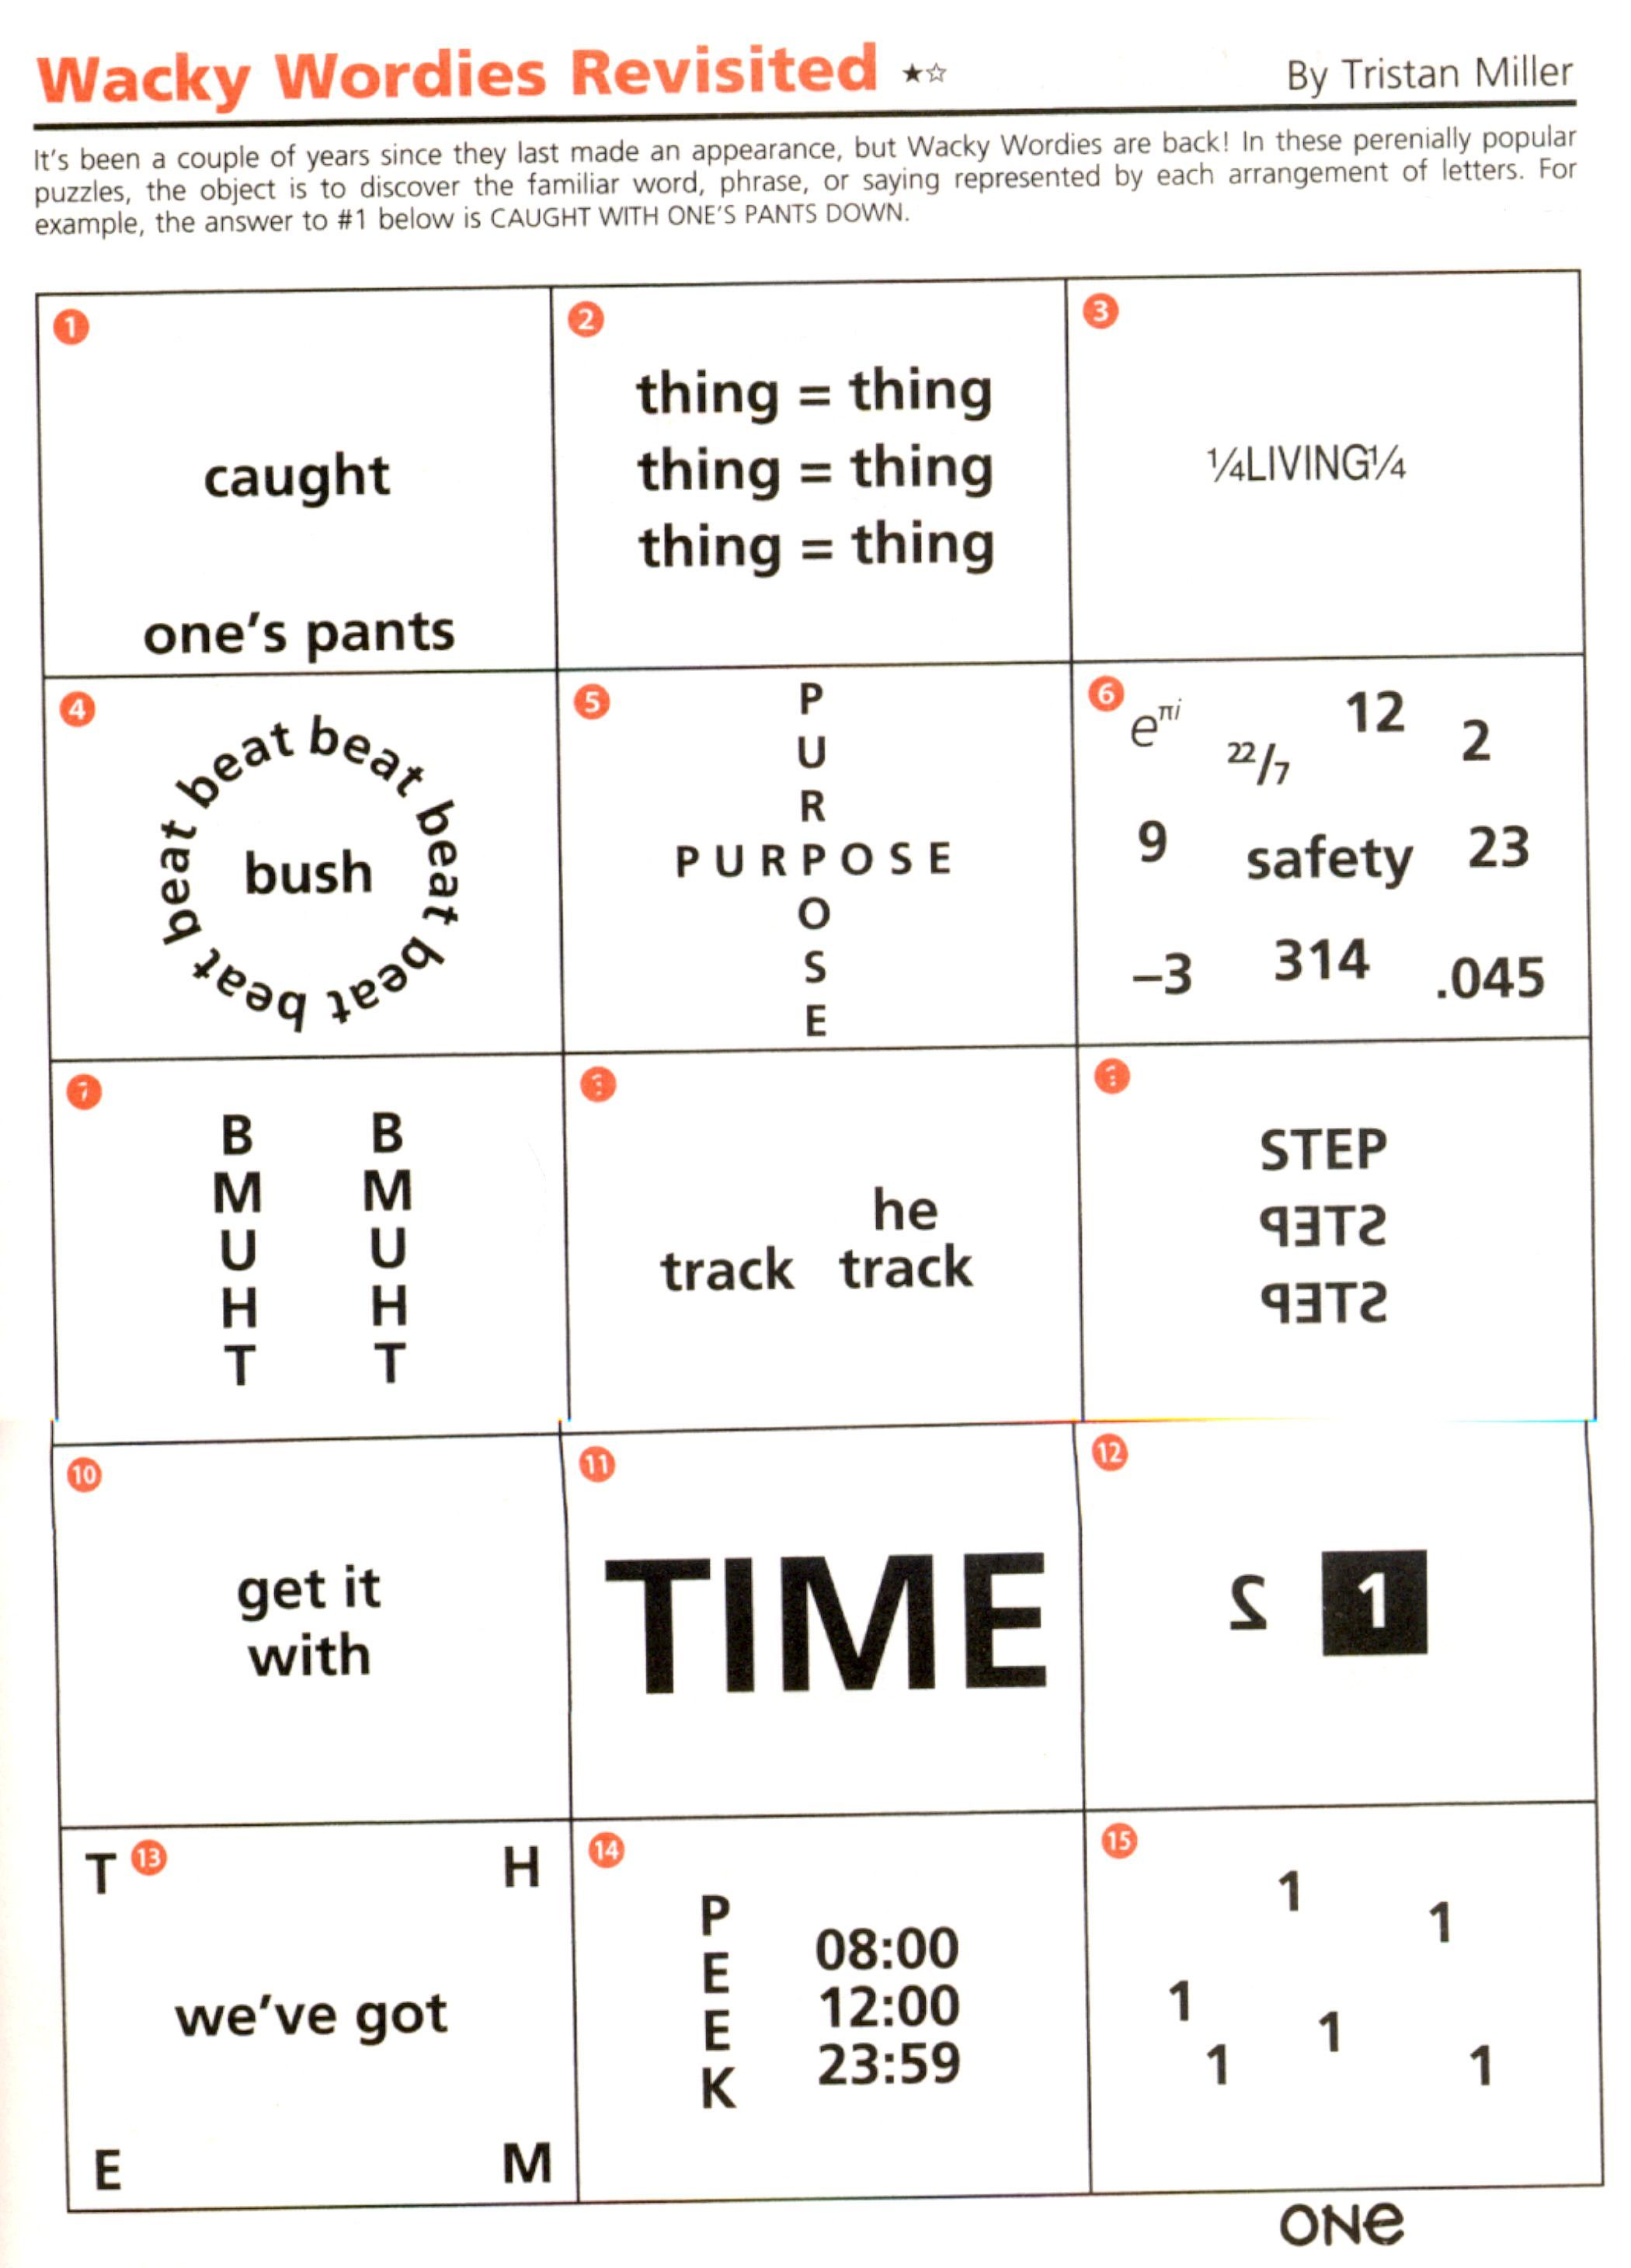 37 Awesome Brain Teasers With Answers Images Word Puzzles Brain Teasers Word Puzzles Brain Teasers Brain Teasers For Kids Brain Teasers